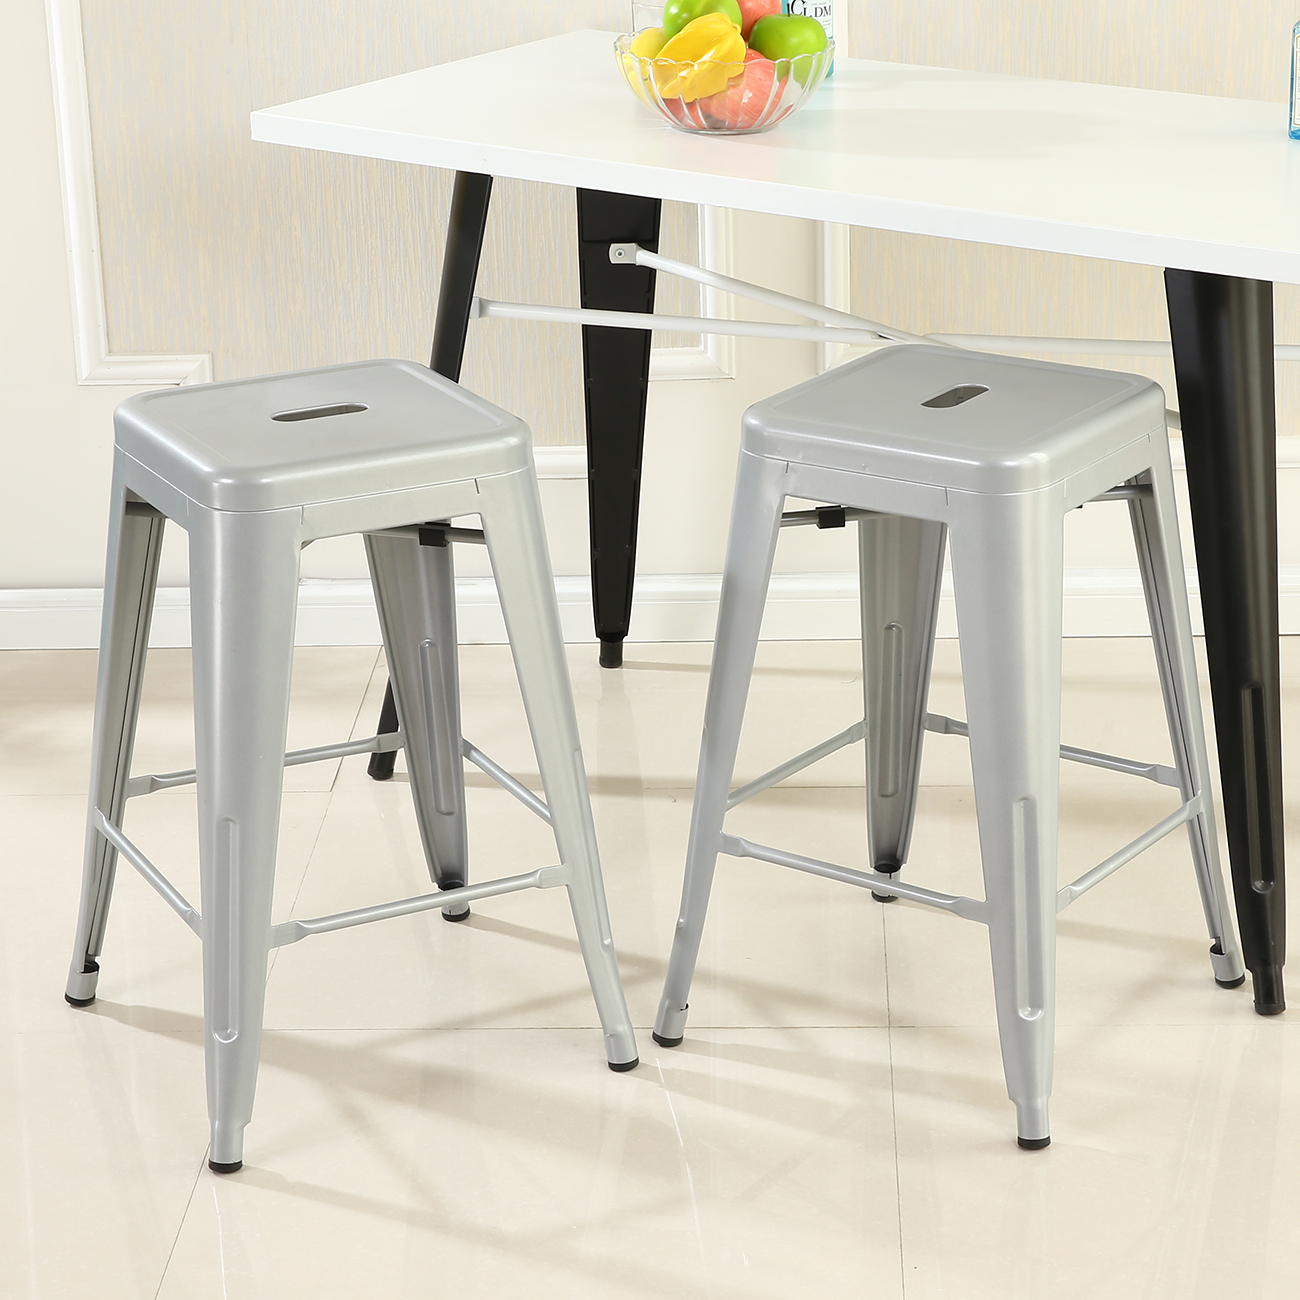 2 Pcs Modern Style Bar Stool Metal Stackable Stools Height